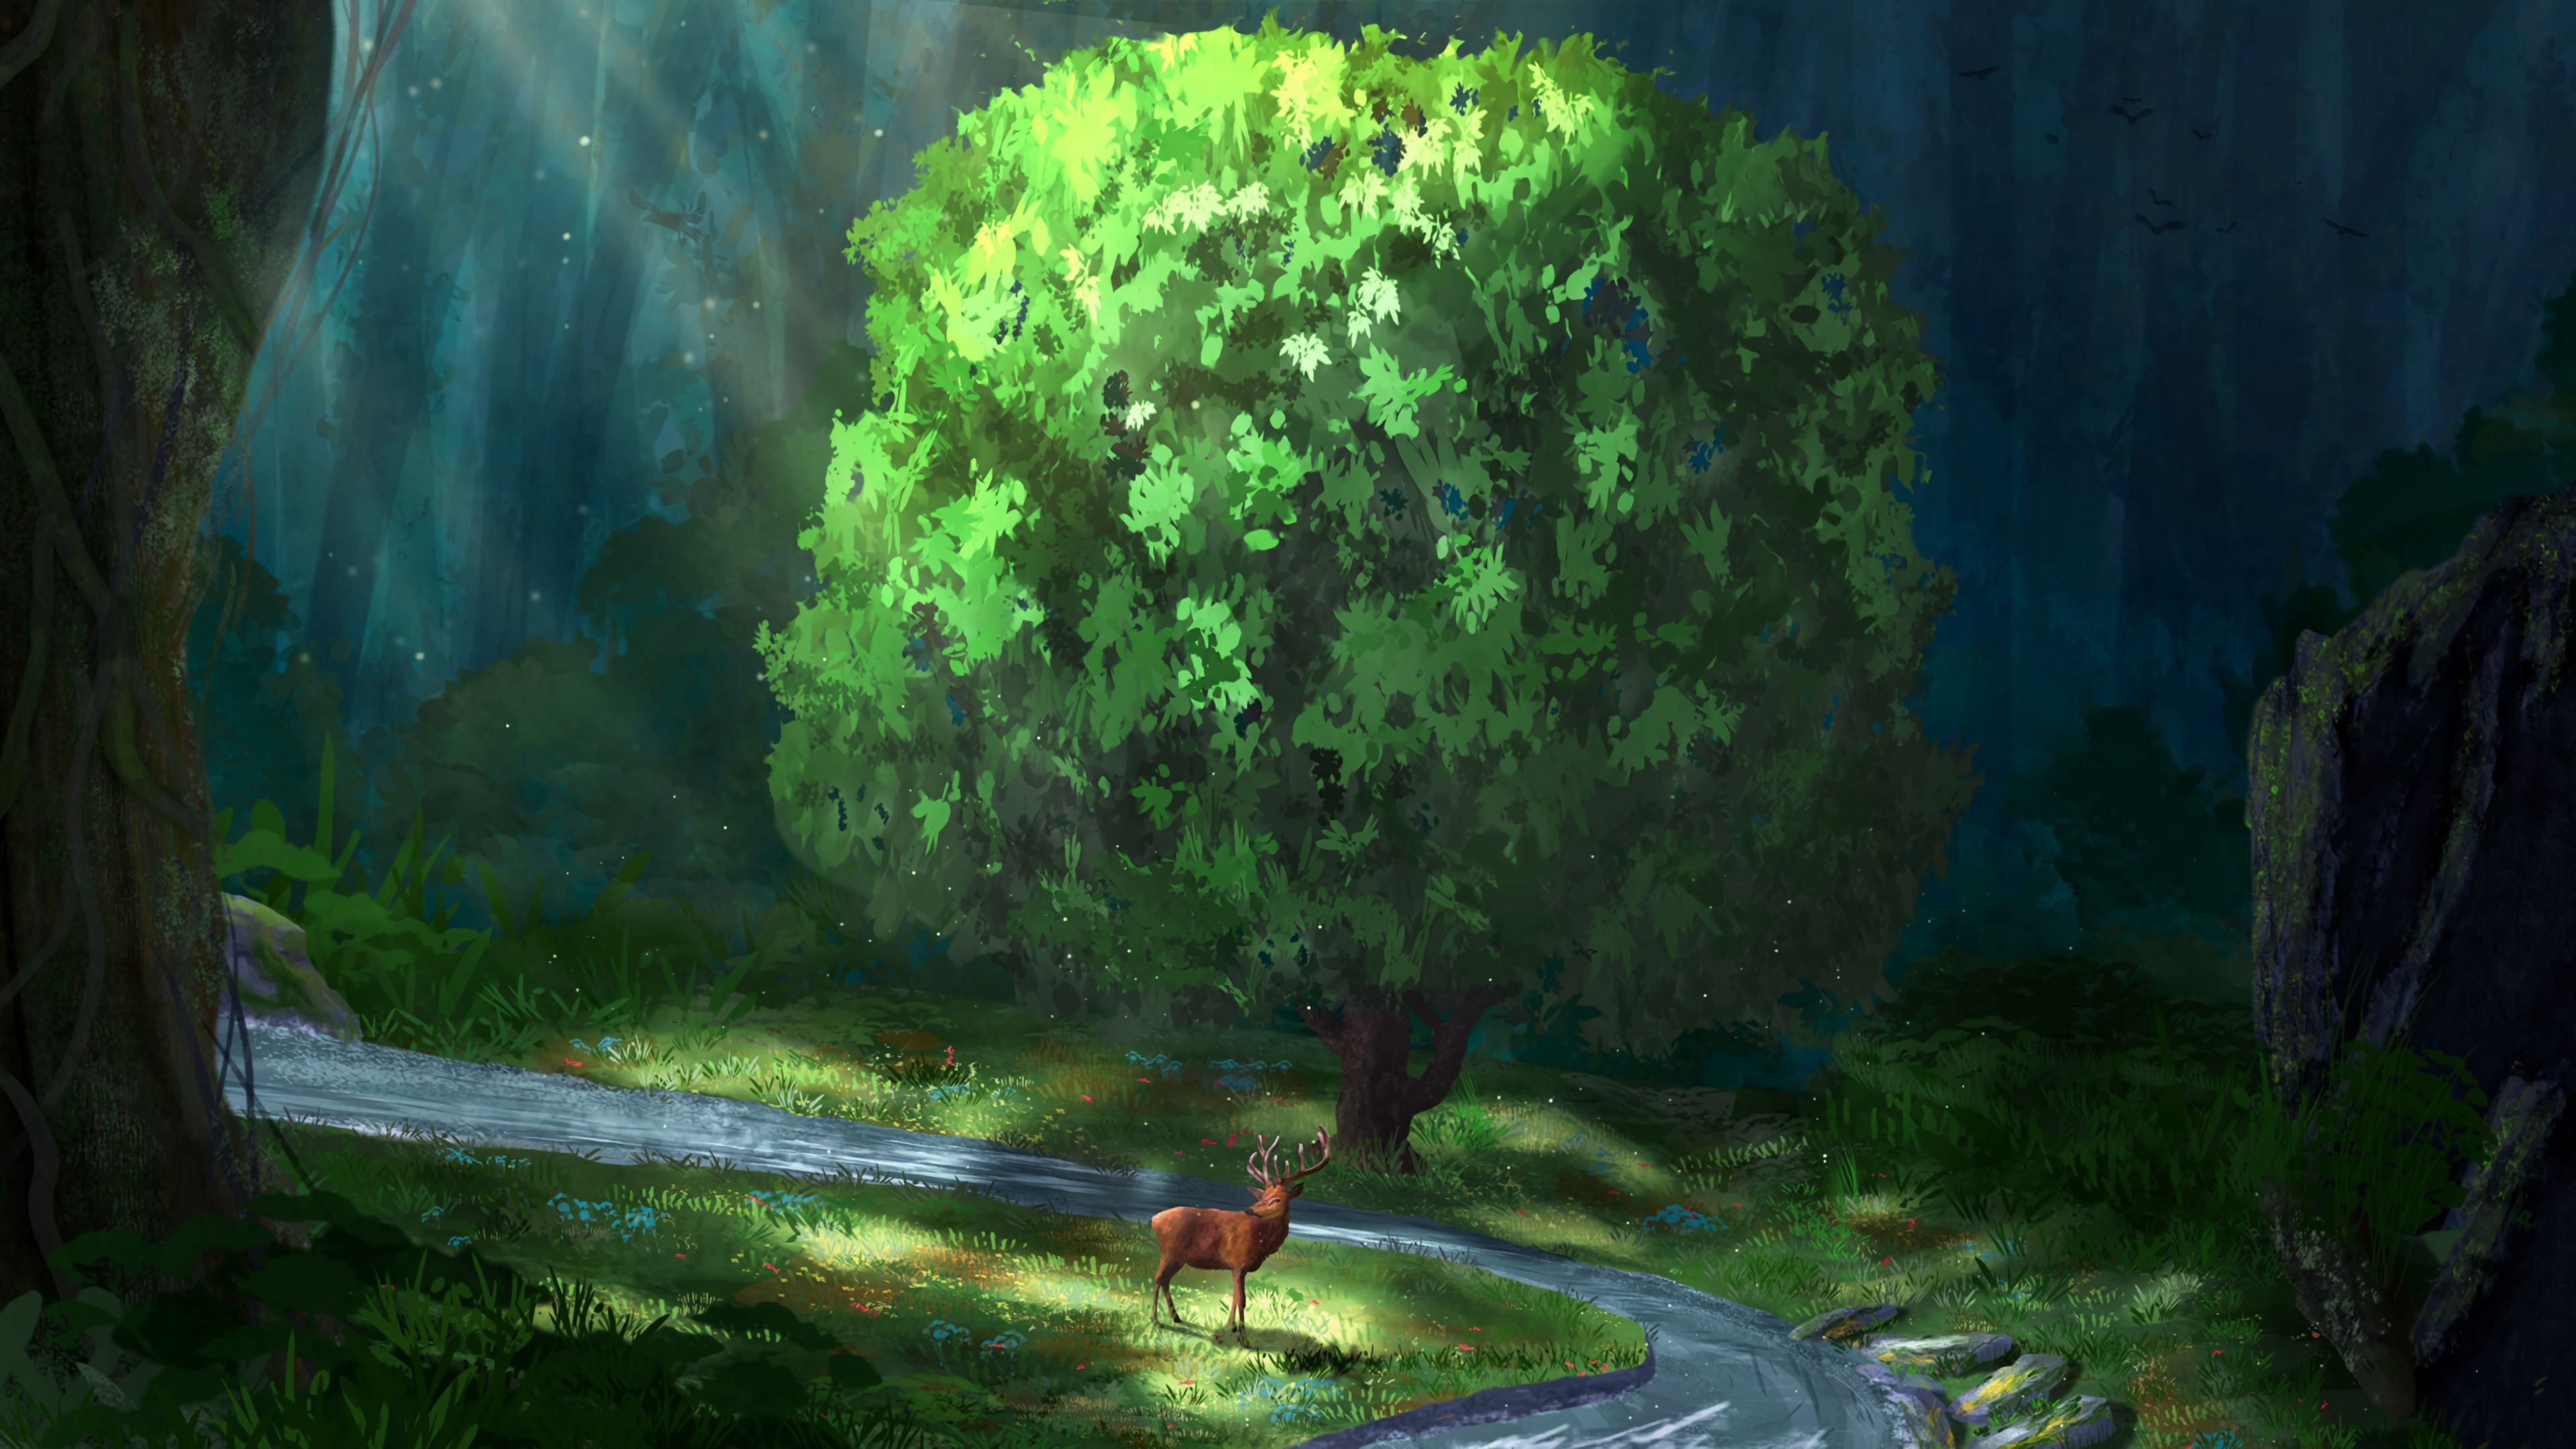 126392 download wallpaper Deer, Rivers, Forest, Art screensavers and pictures for free